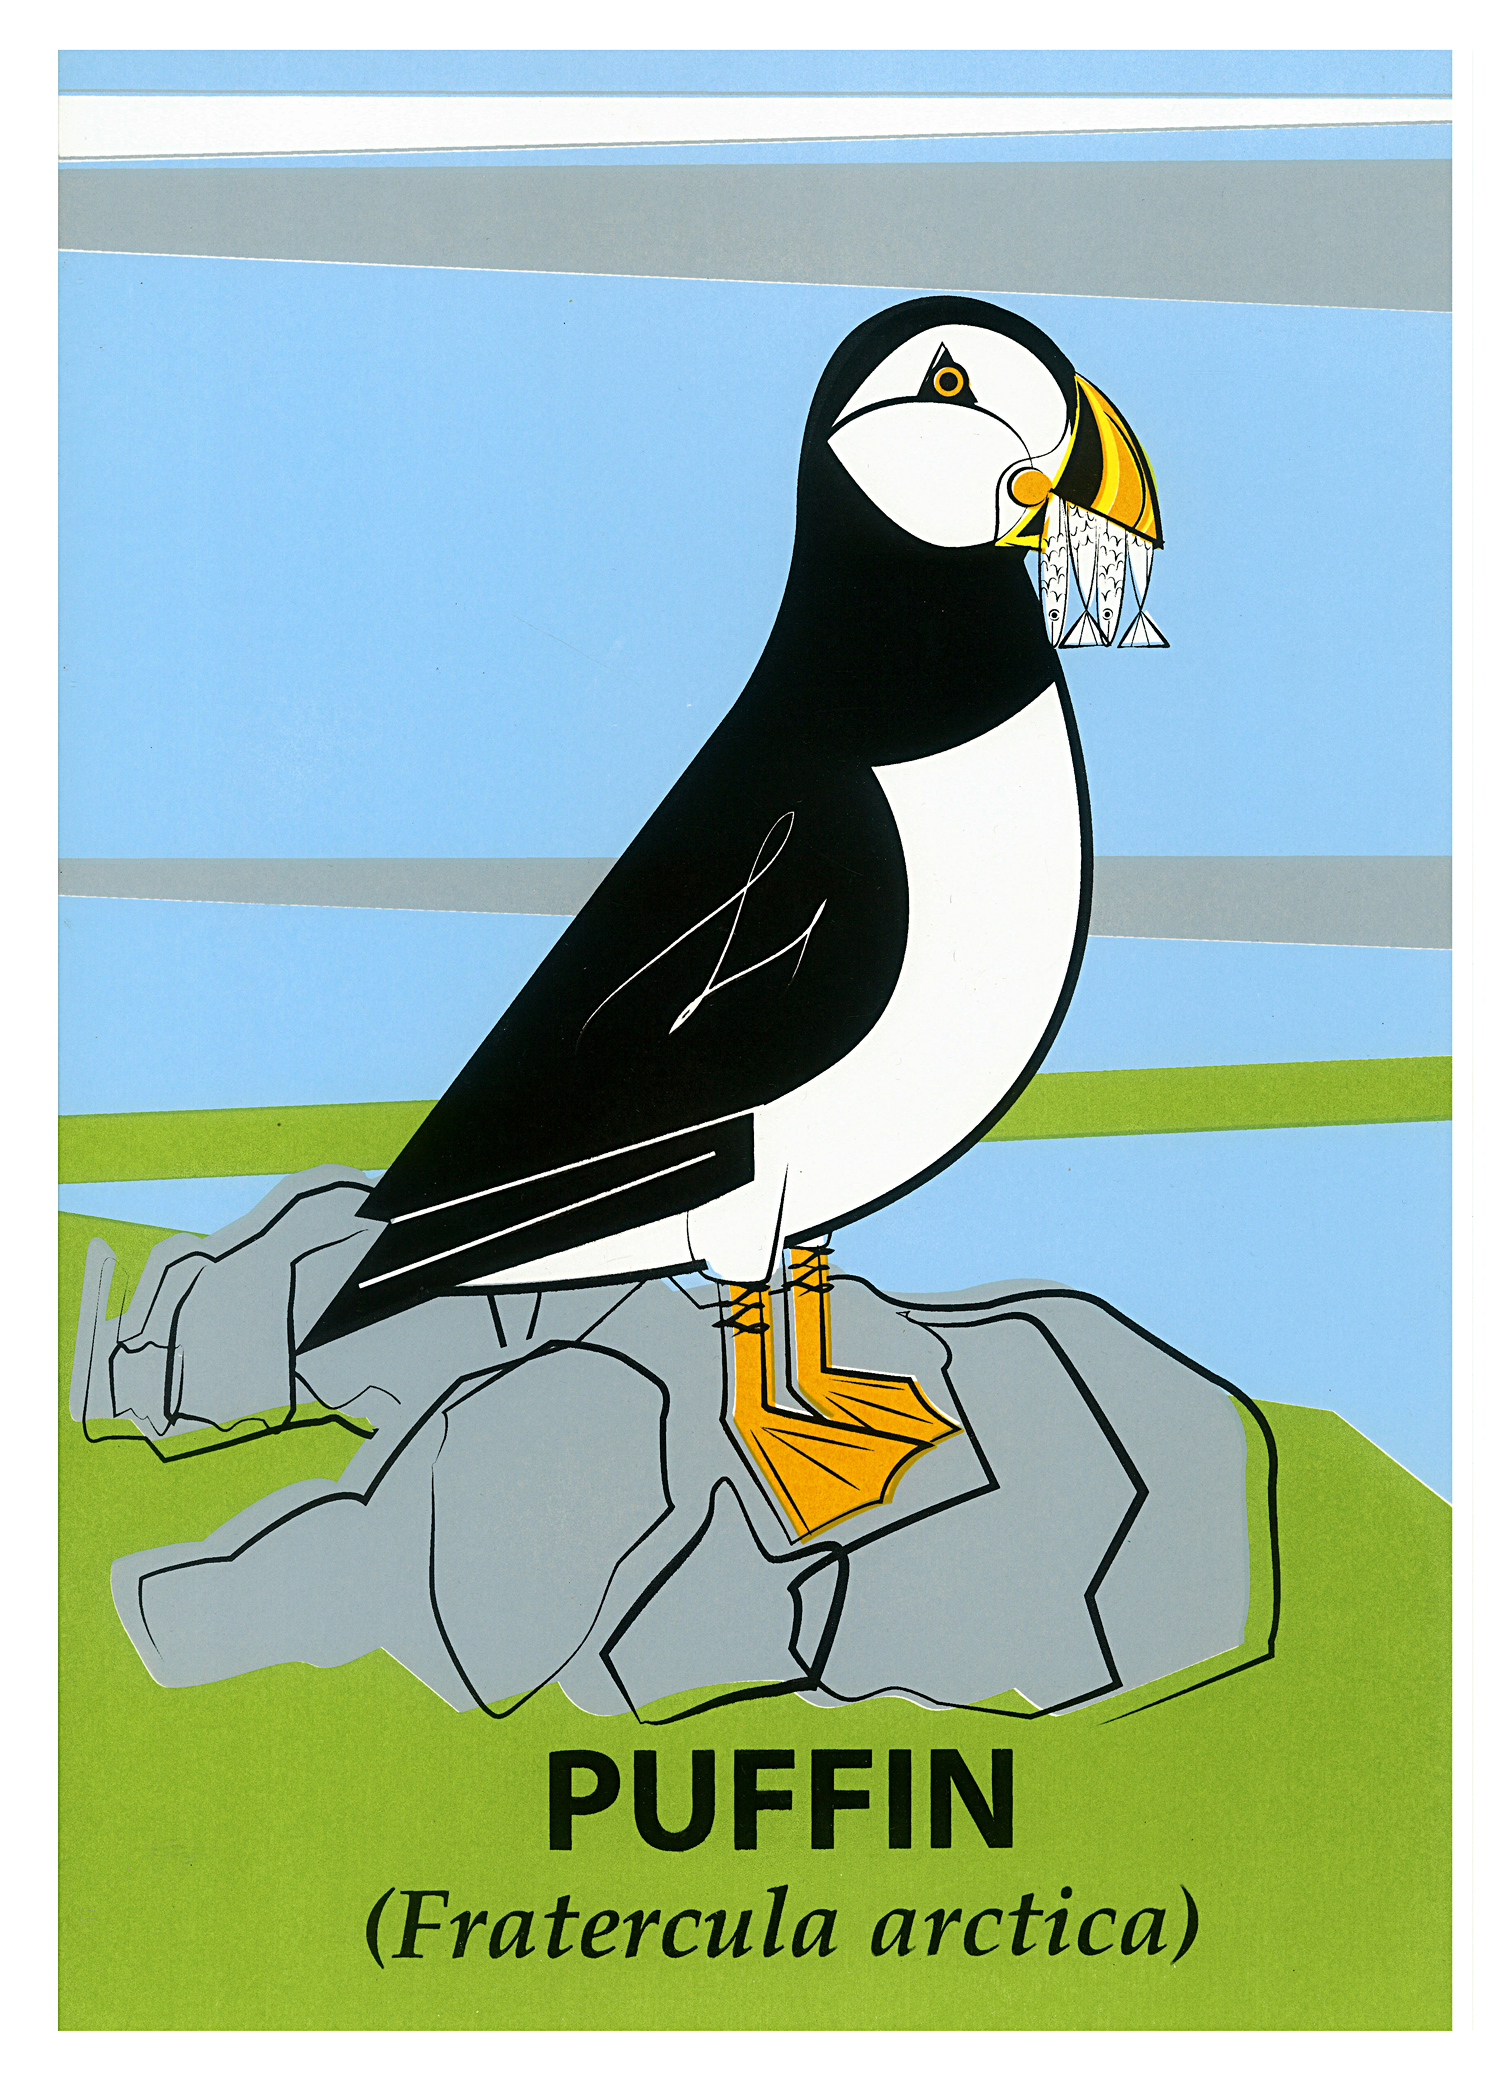 Limited Edition Puffin Screenprint